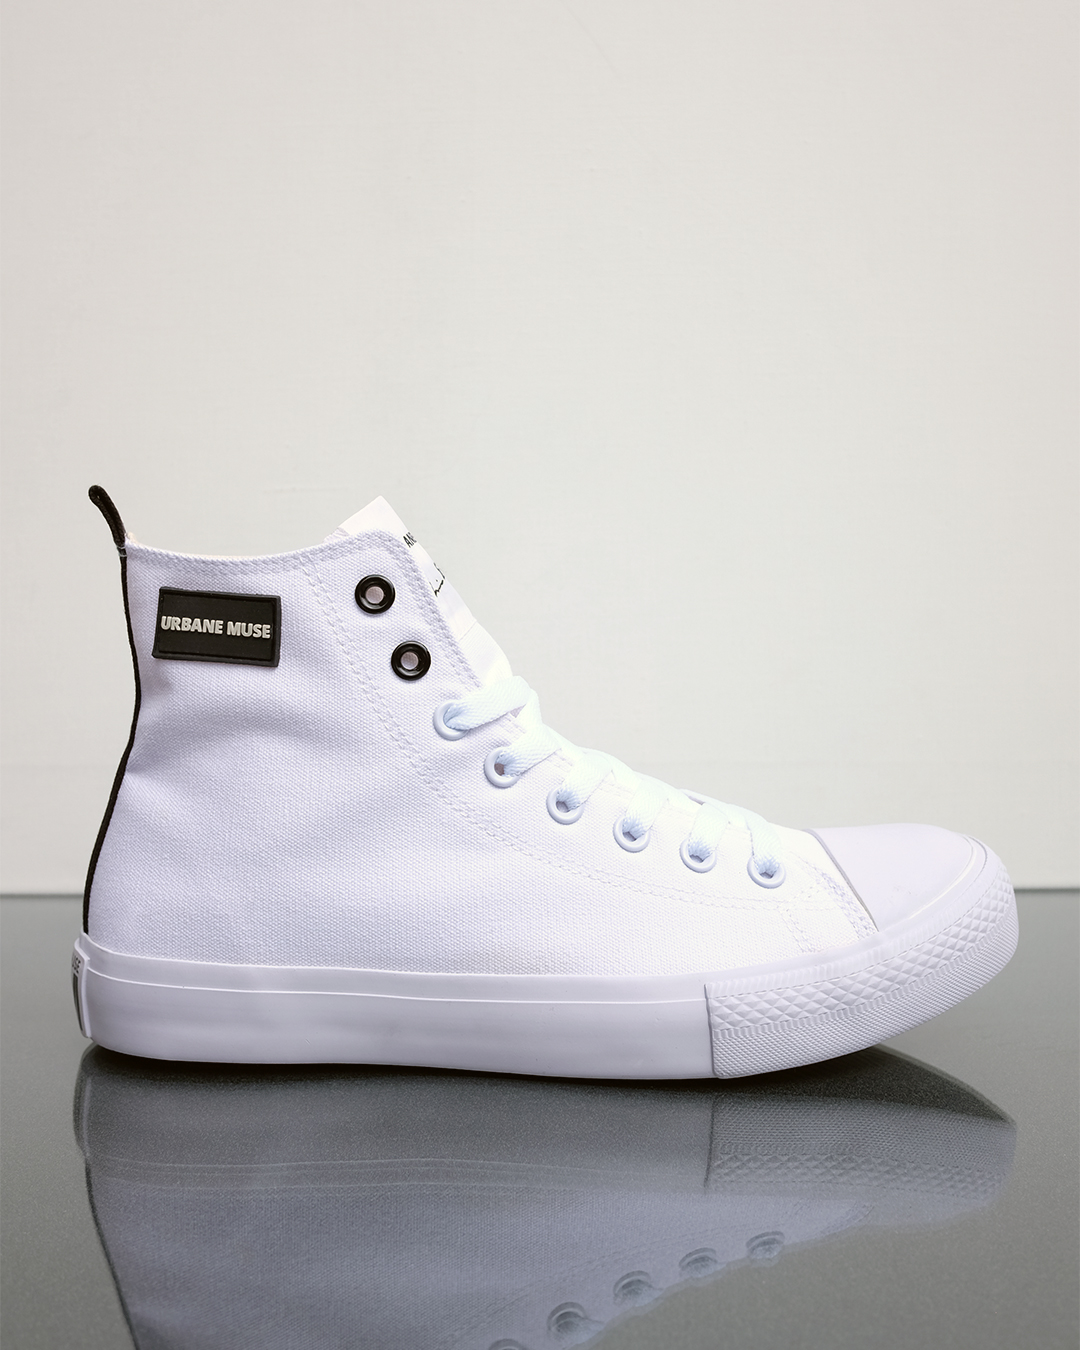 photo-1b-CANVAS-HIGH-TOP-URBANE-MUSE-CHRIS-SMITH-SNEAKERS